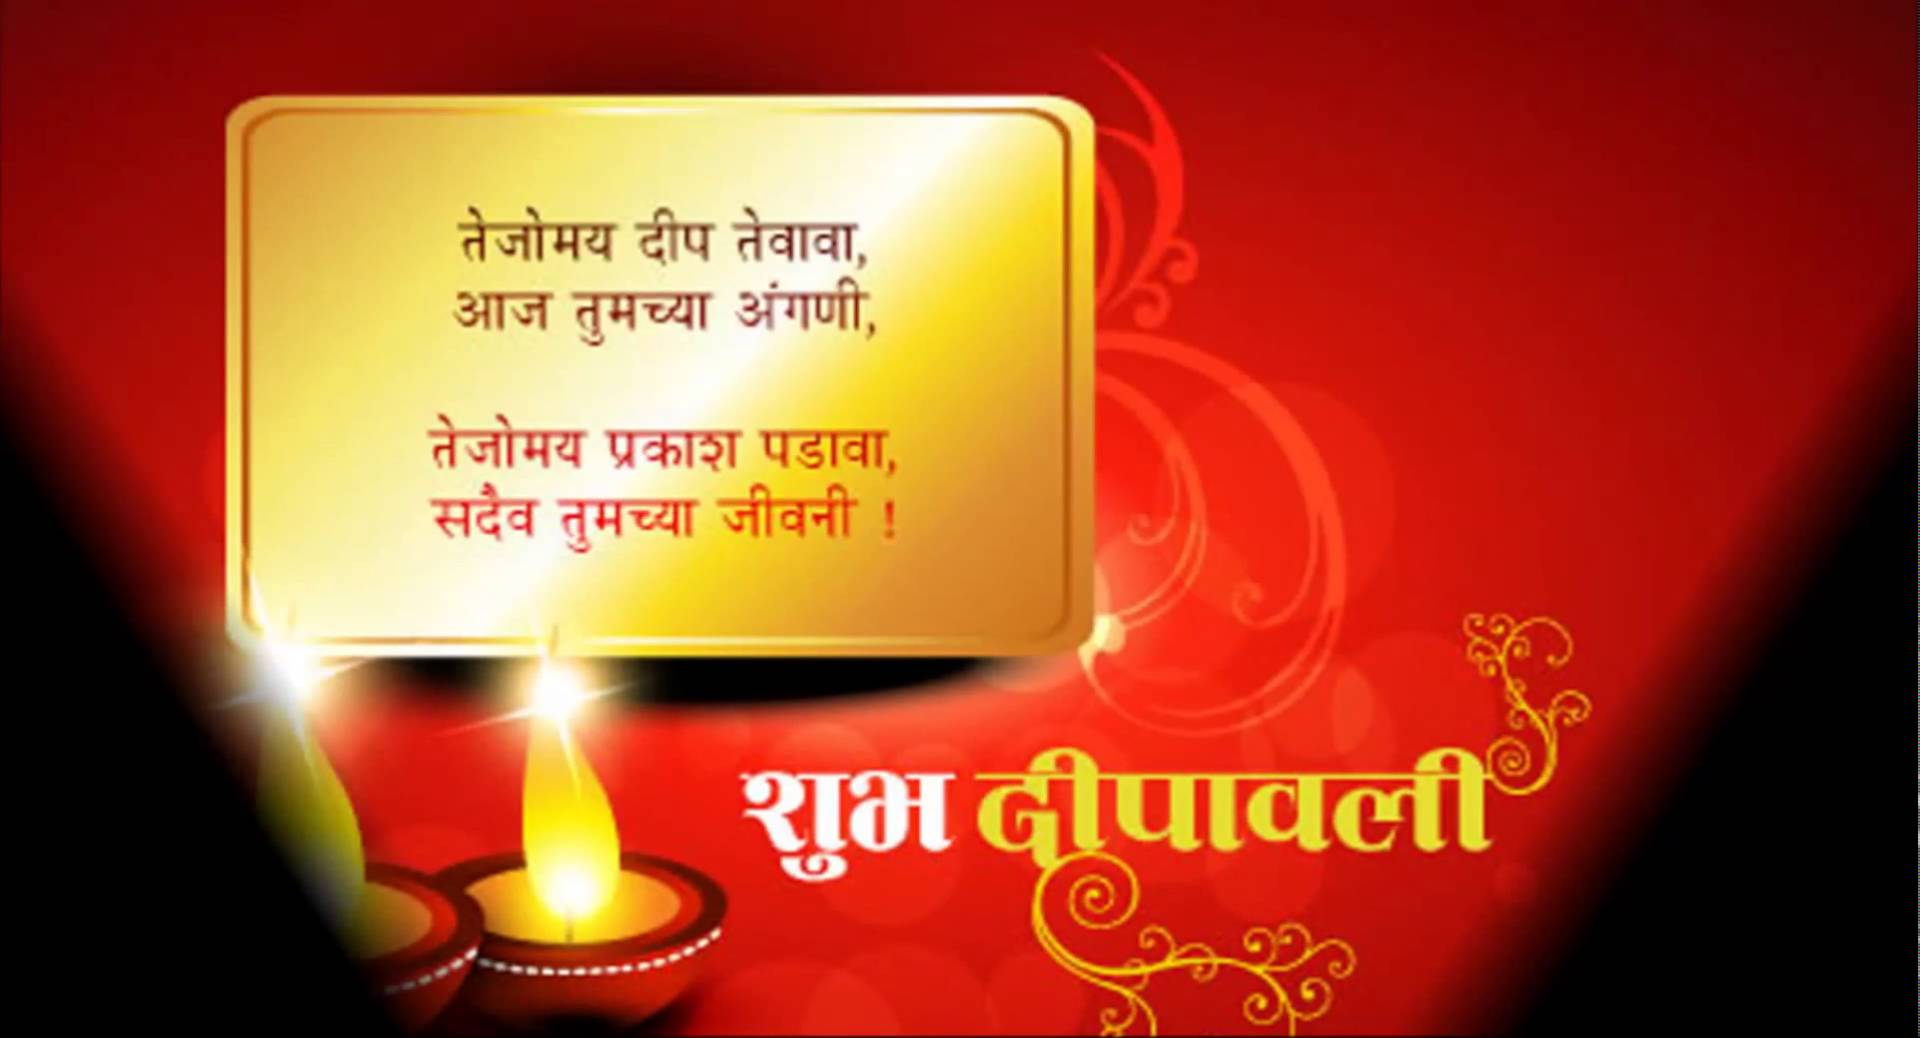 Happy Diwali Marathi Greetings